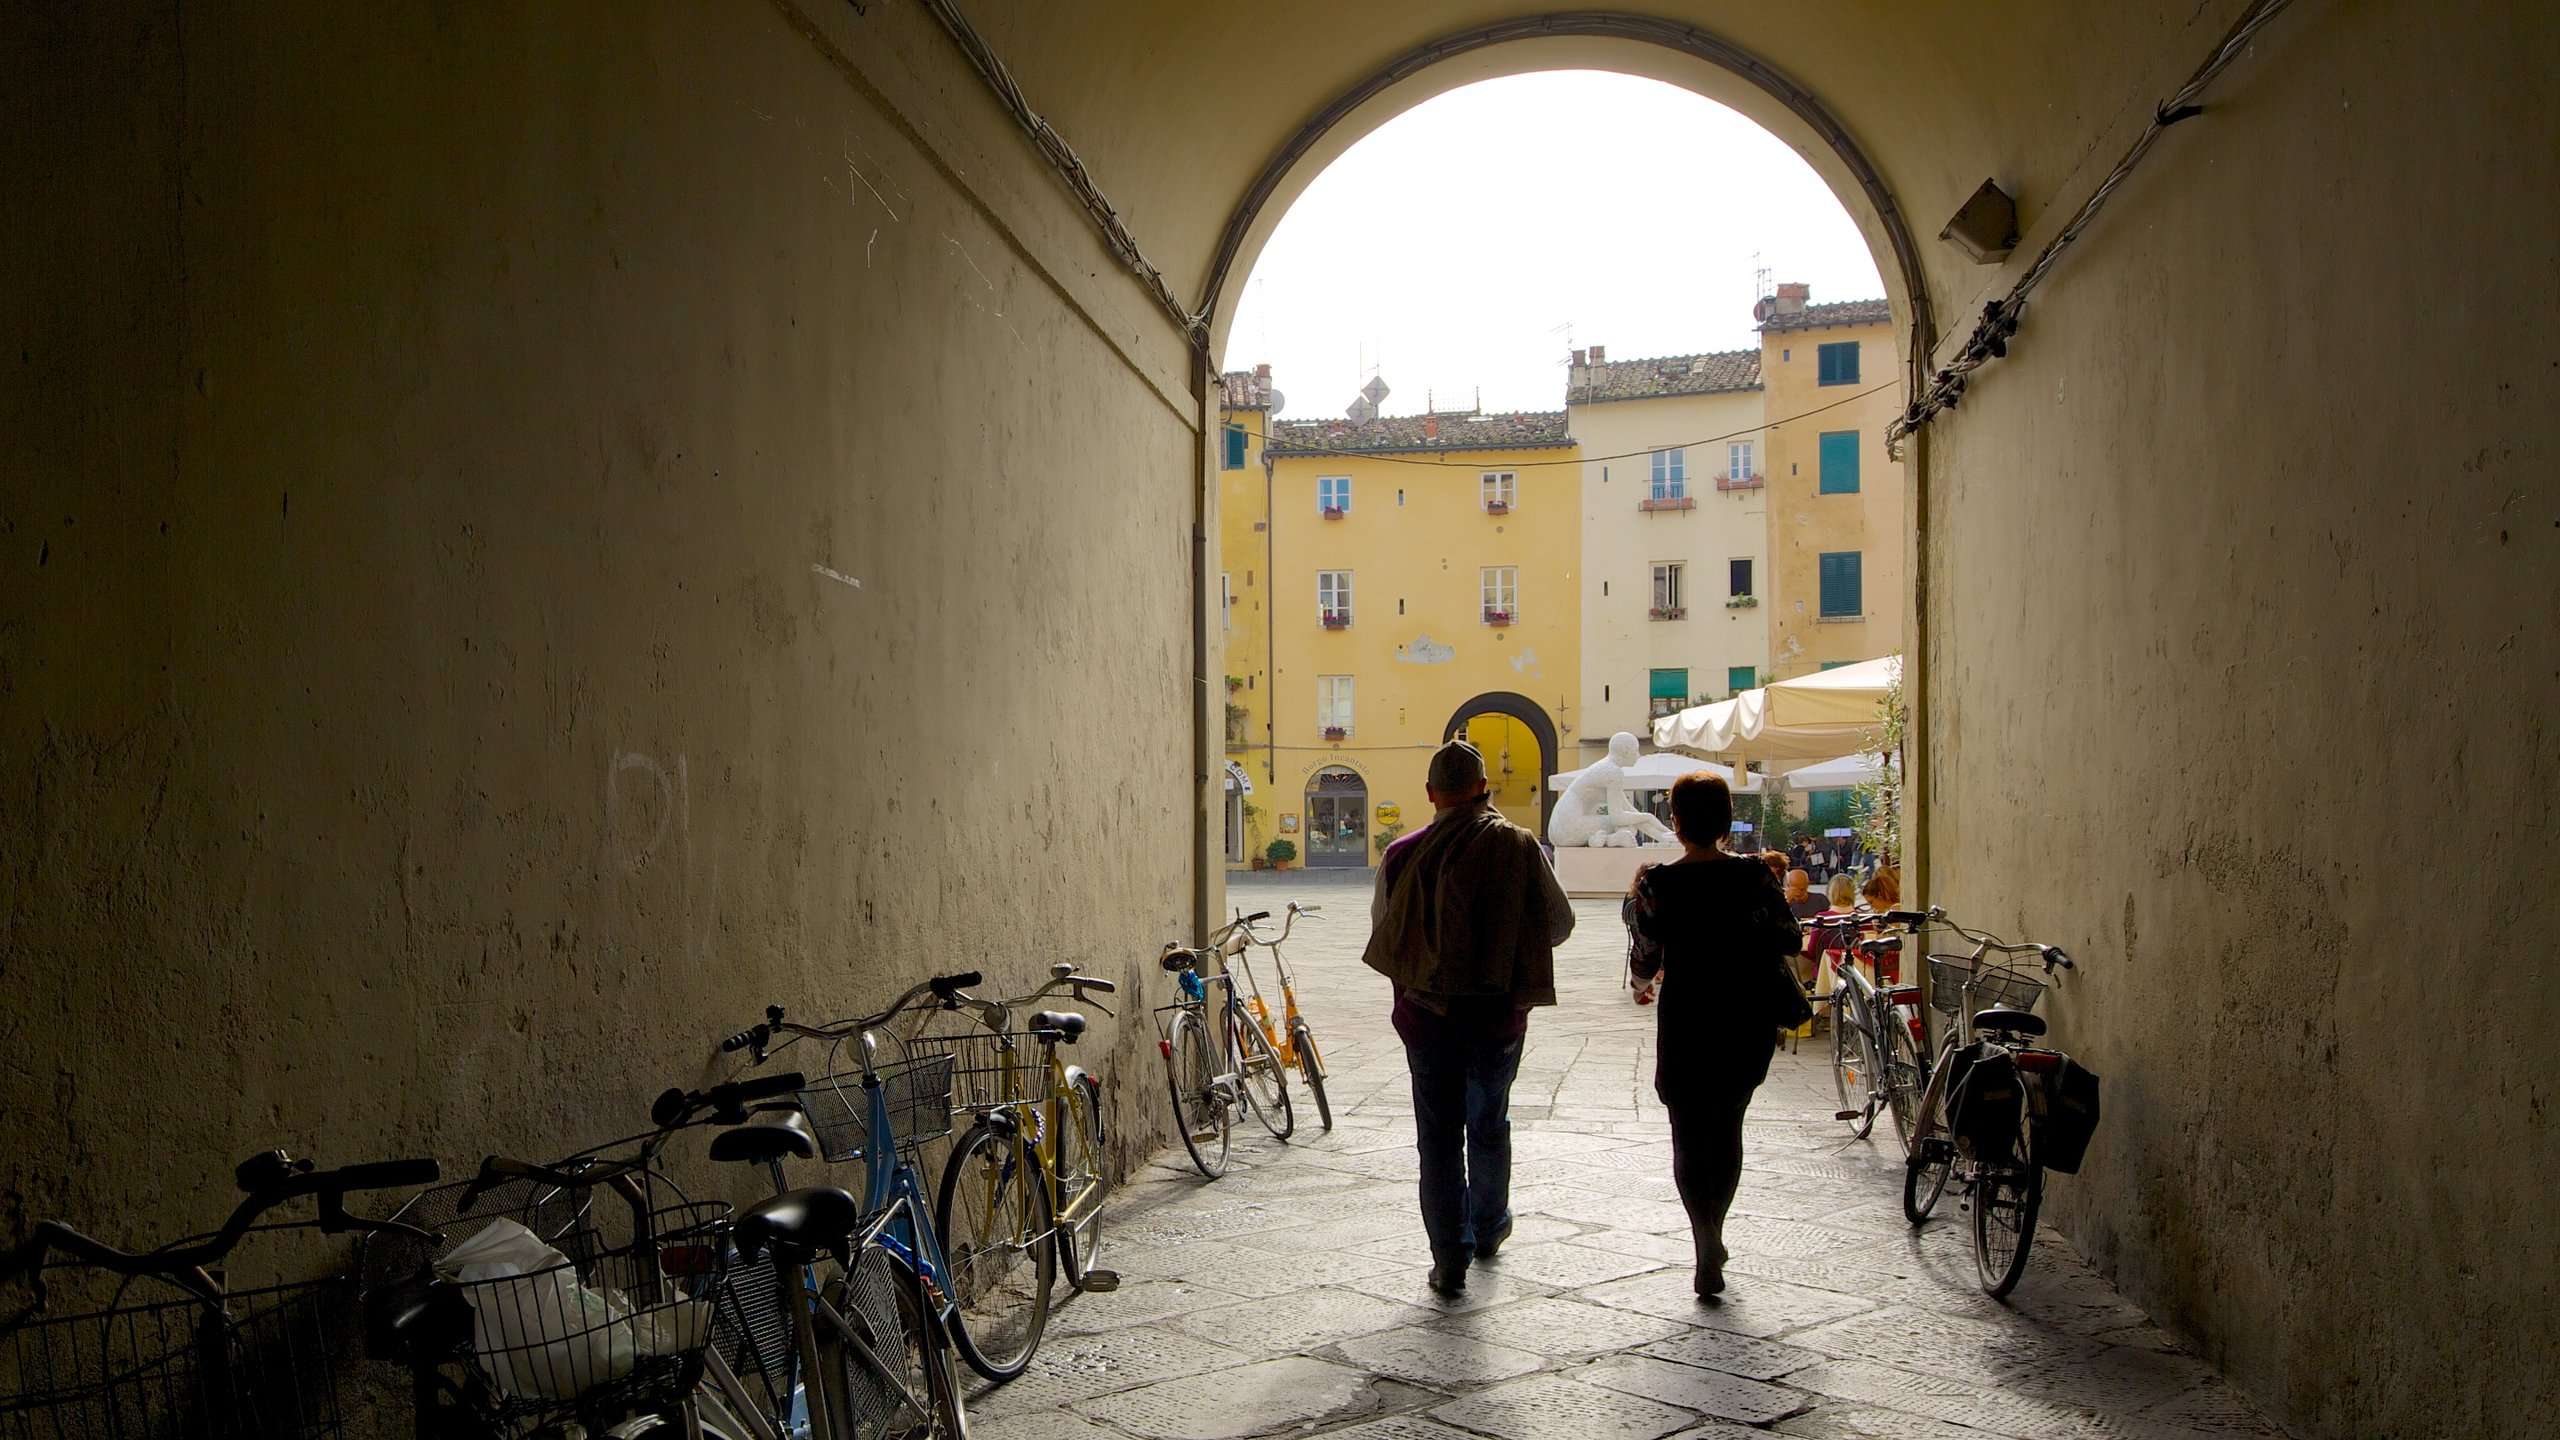 Lucca (province), Tuscany, Italy